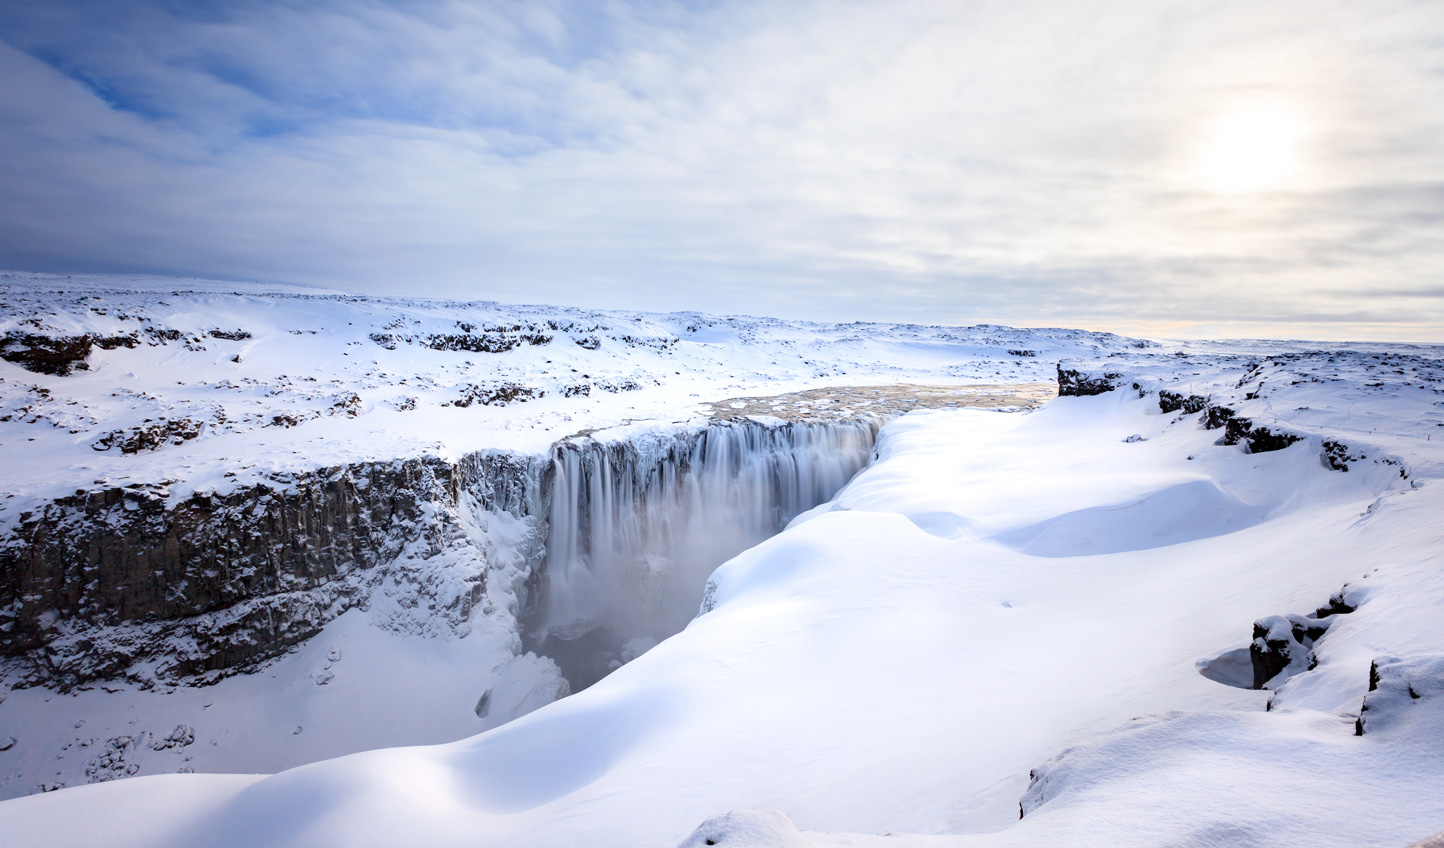 Carve across Iceland's winter